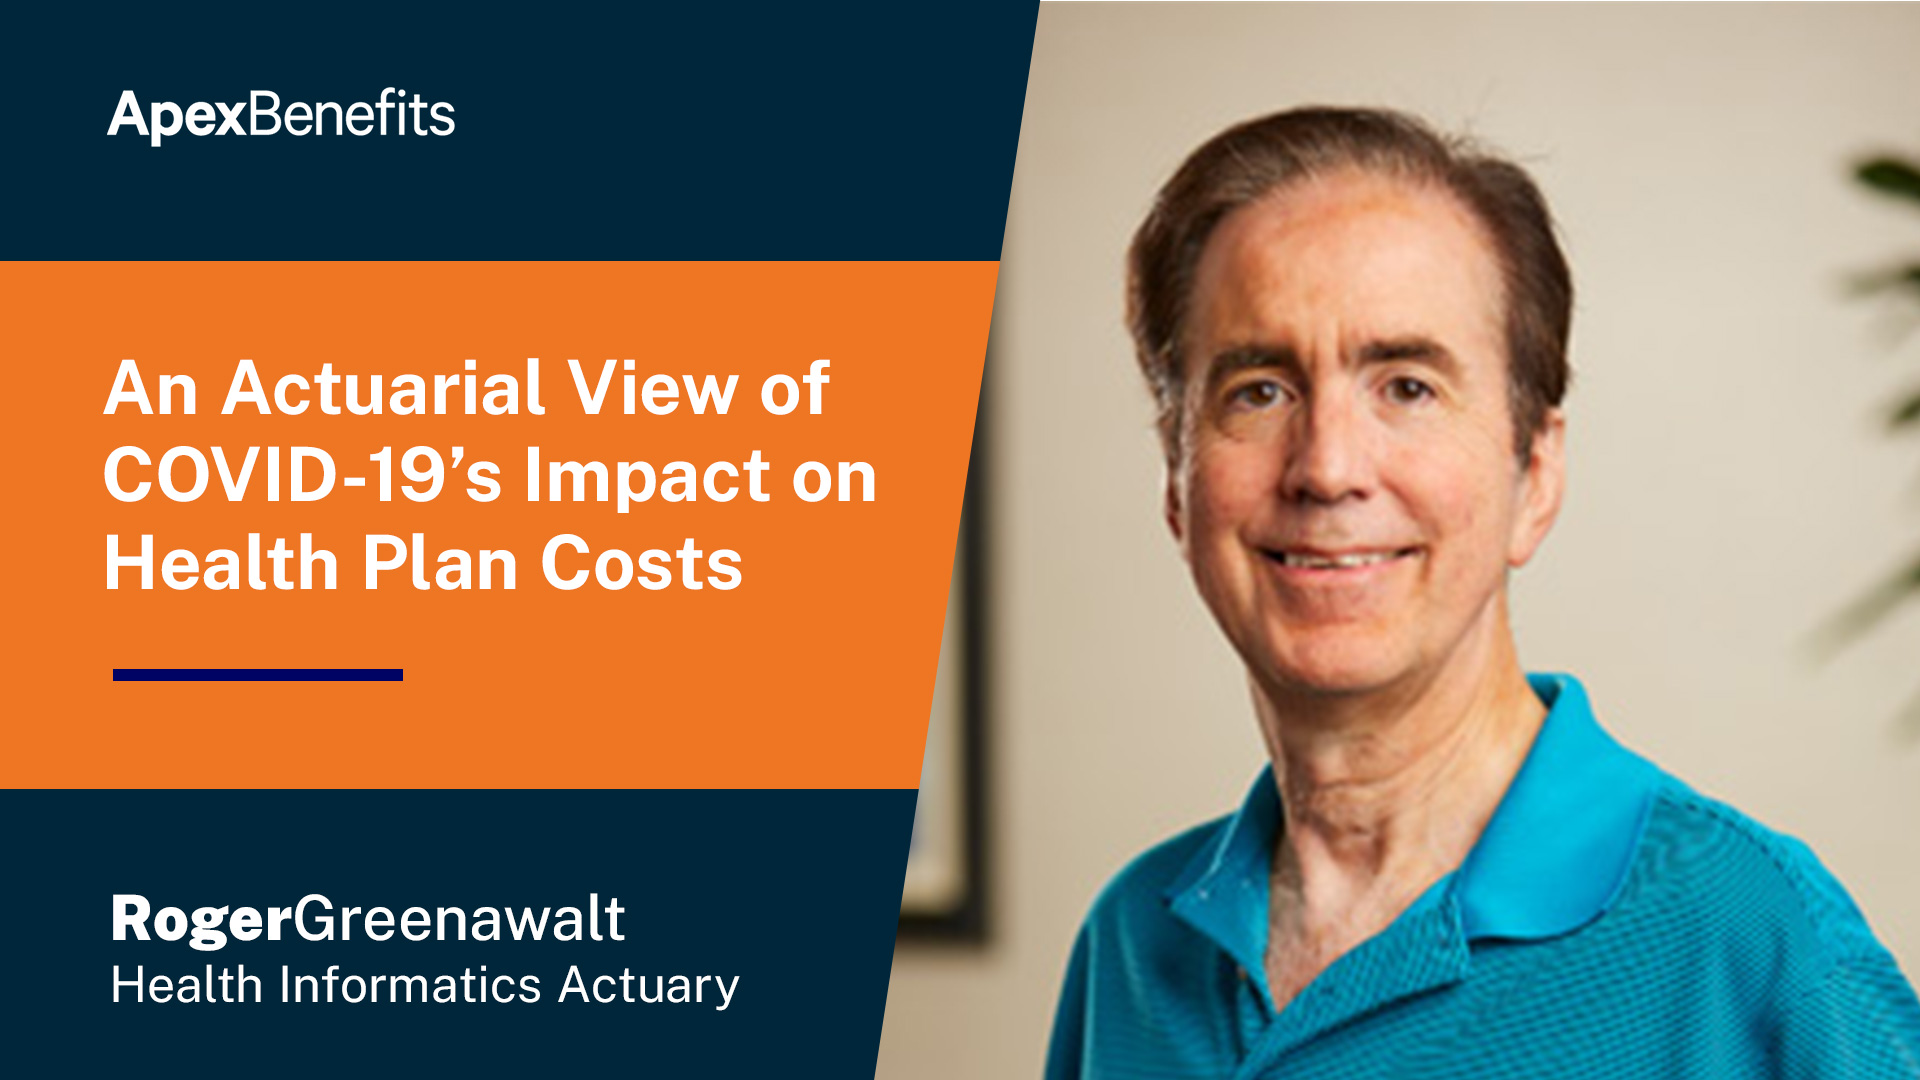 An Actuarial Perspective on COVID-19